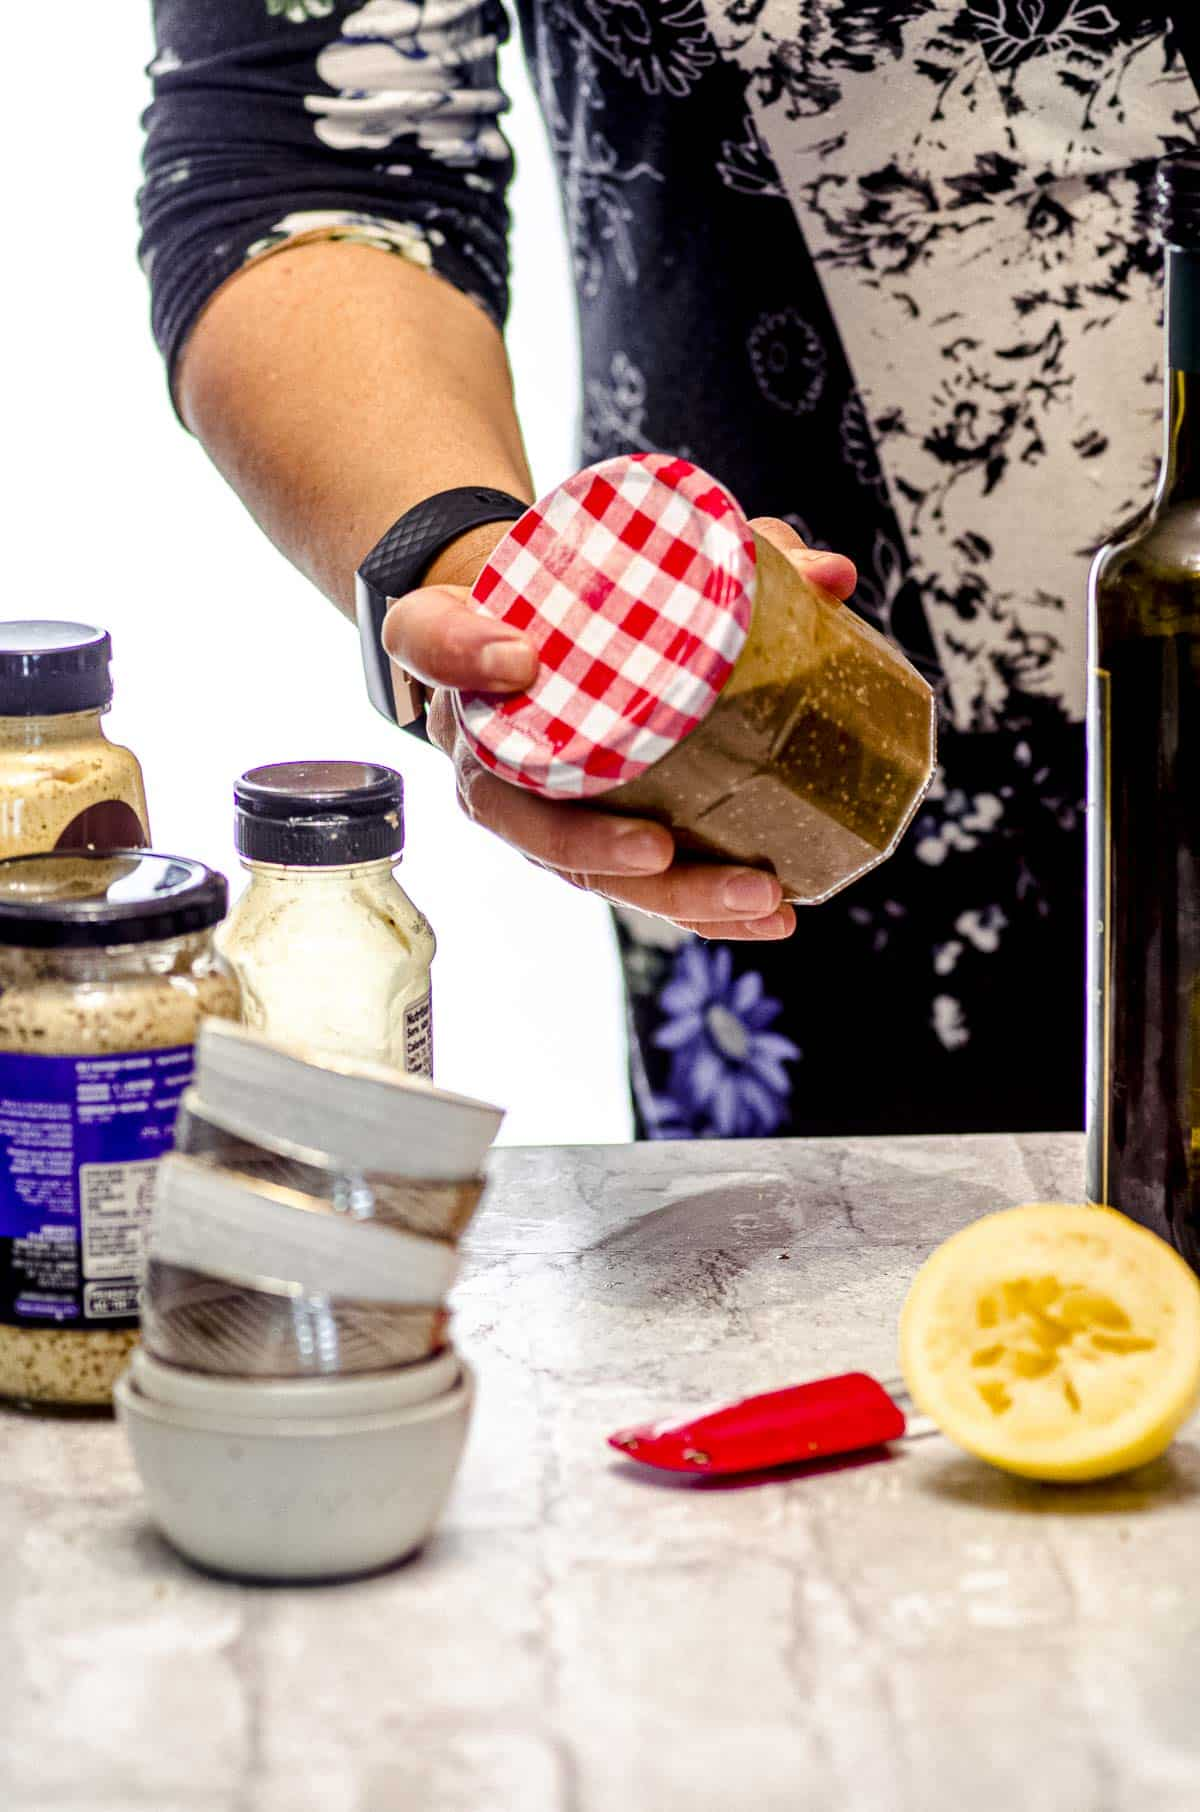 shaking the ingredients of a creamy balsamic dressing in a glass jar.